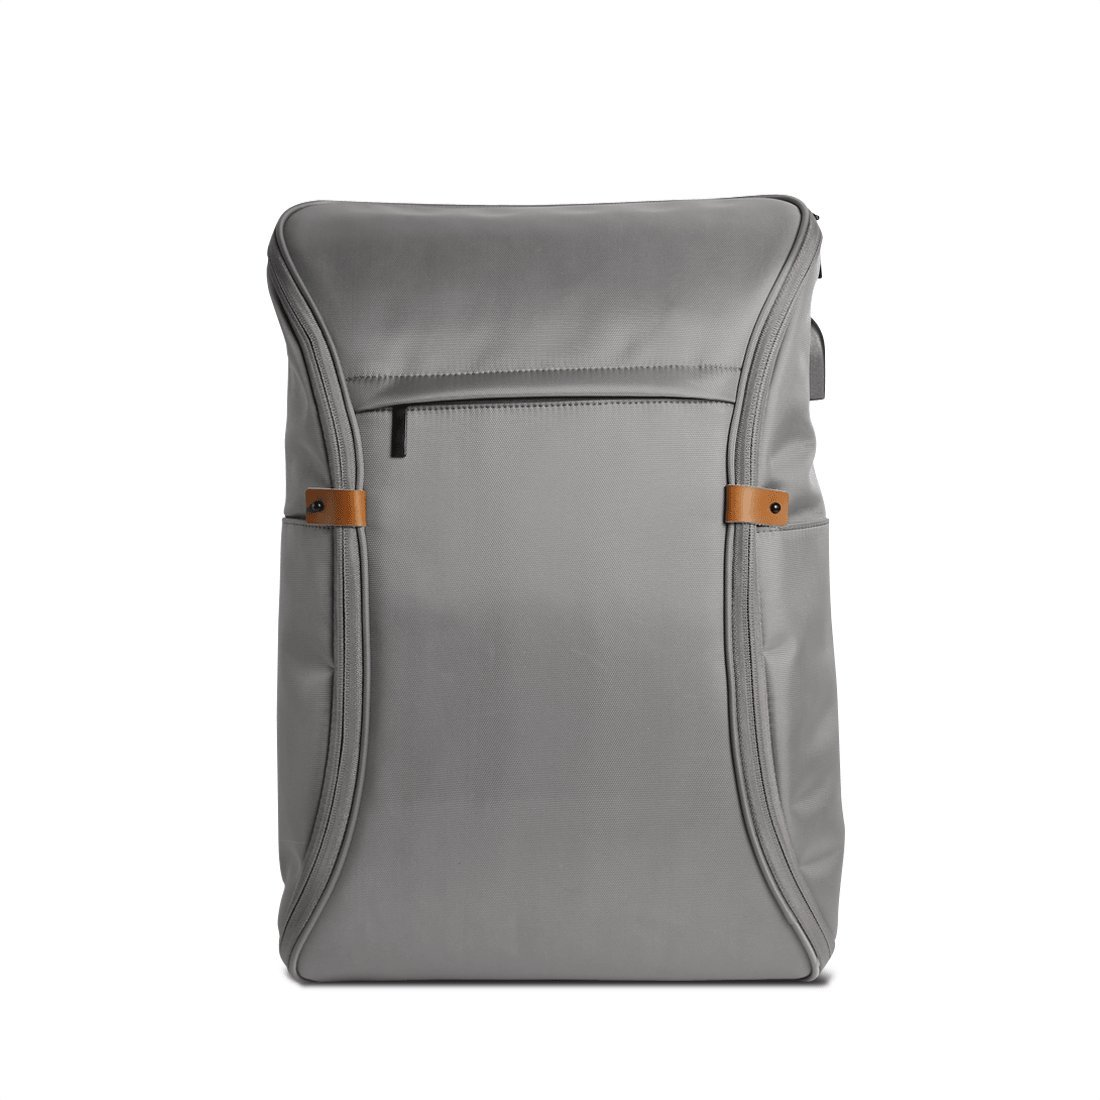 2de6702341 Scarters Splash-proof Canvas The Metropolitan 15.6